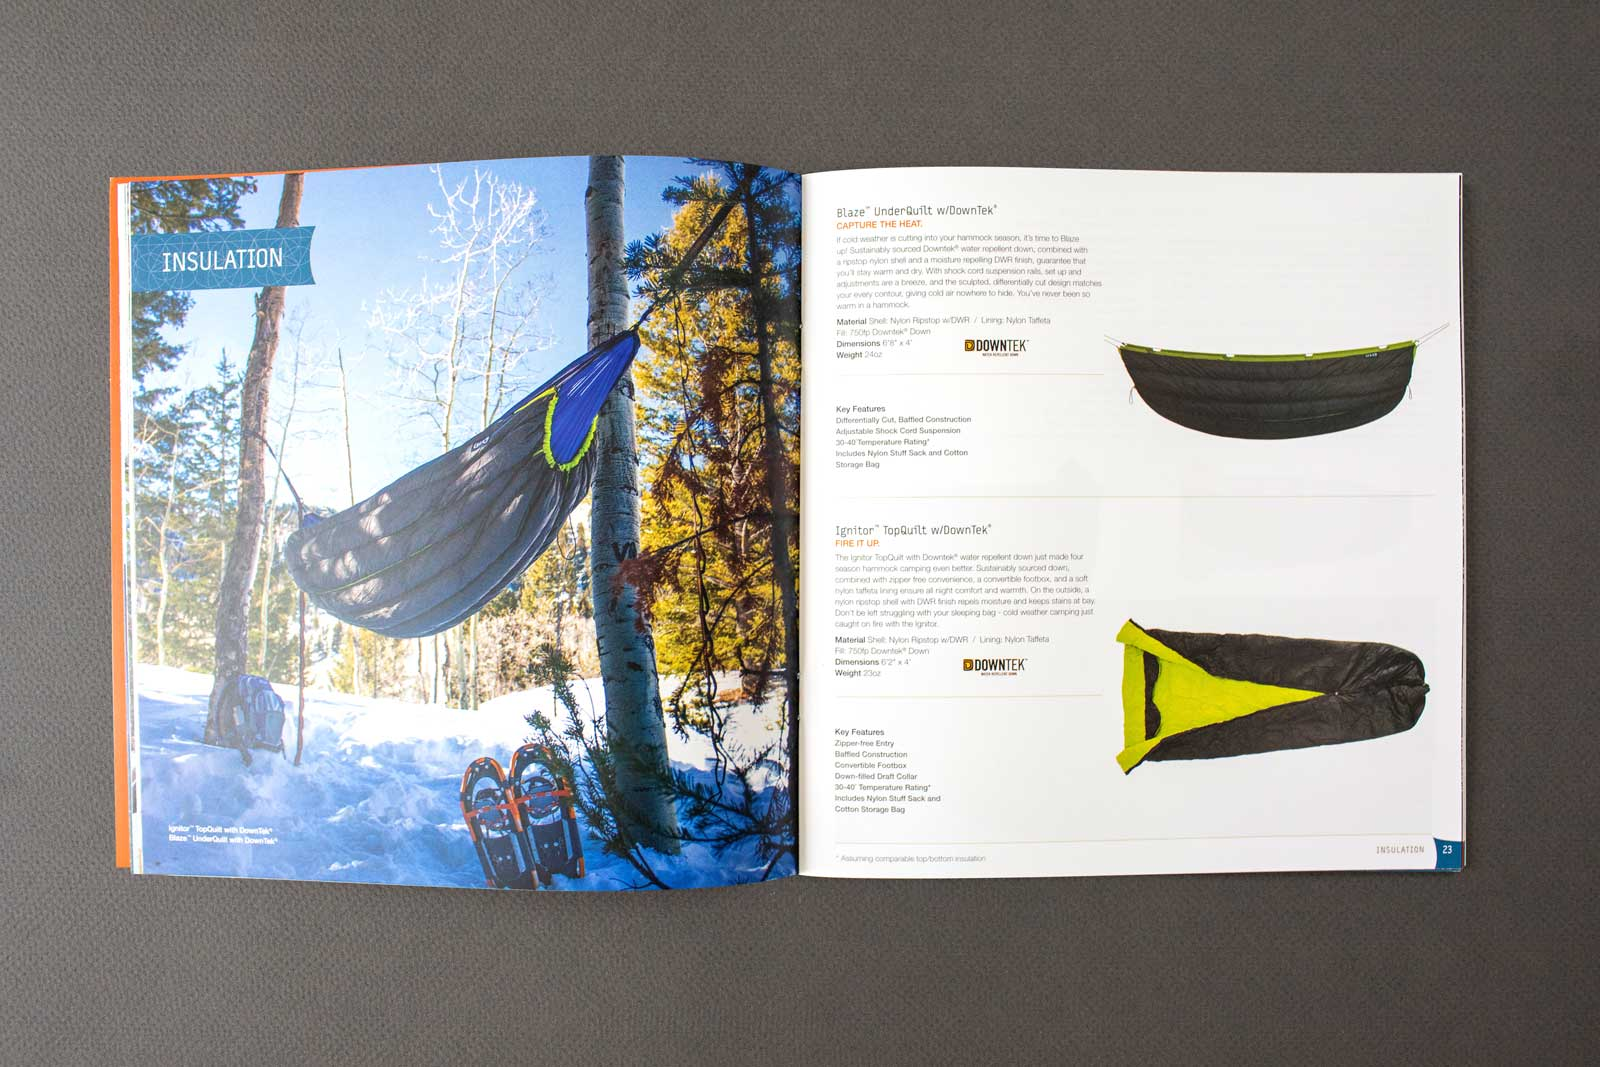 ENO Hammocks catalog spread show products and hiker sleeping in insulated hammock handing over a snow-covered ground.